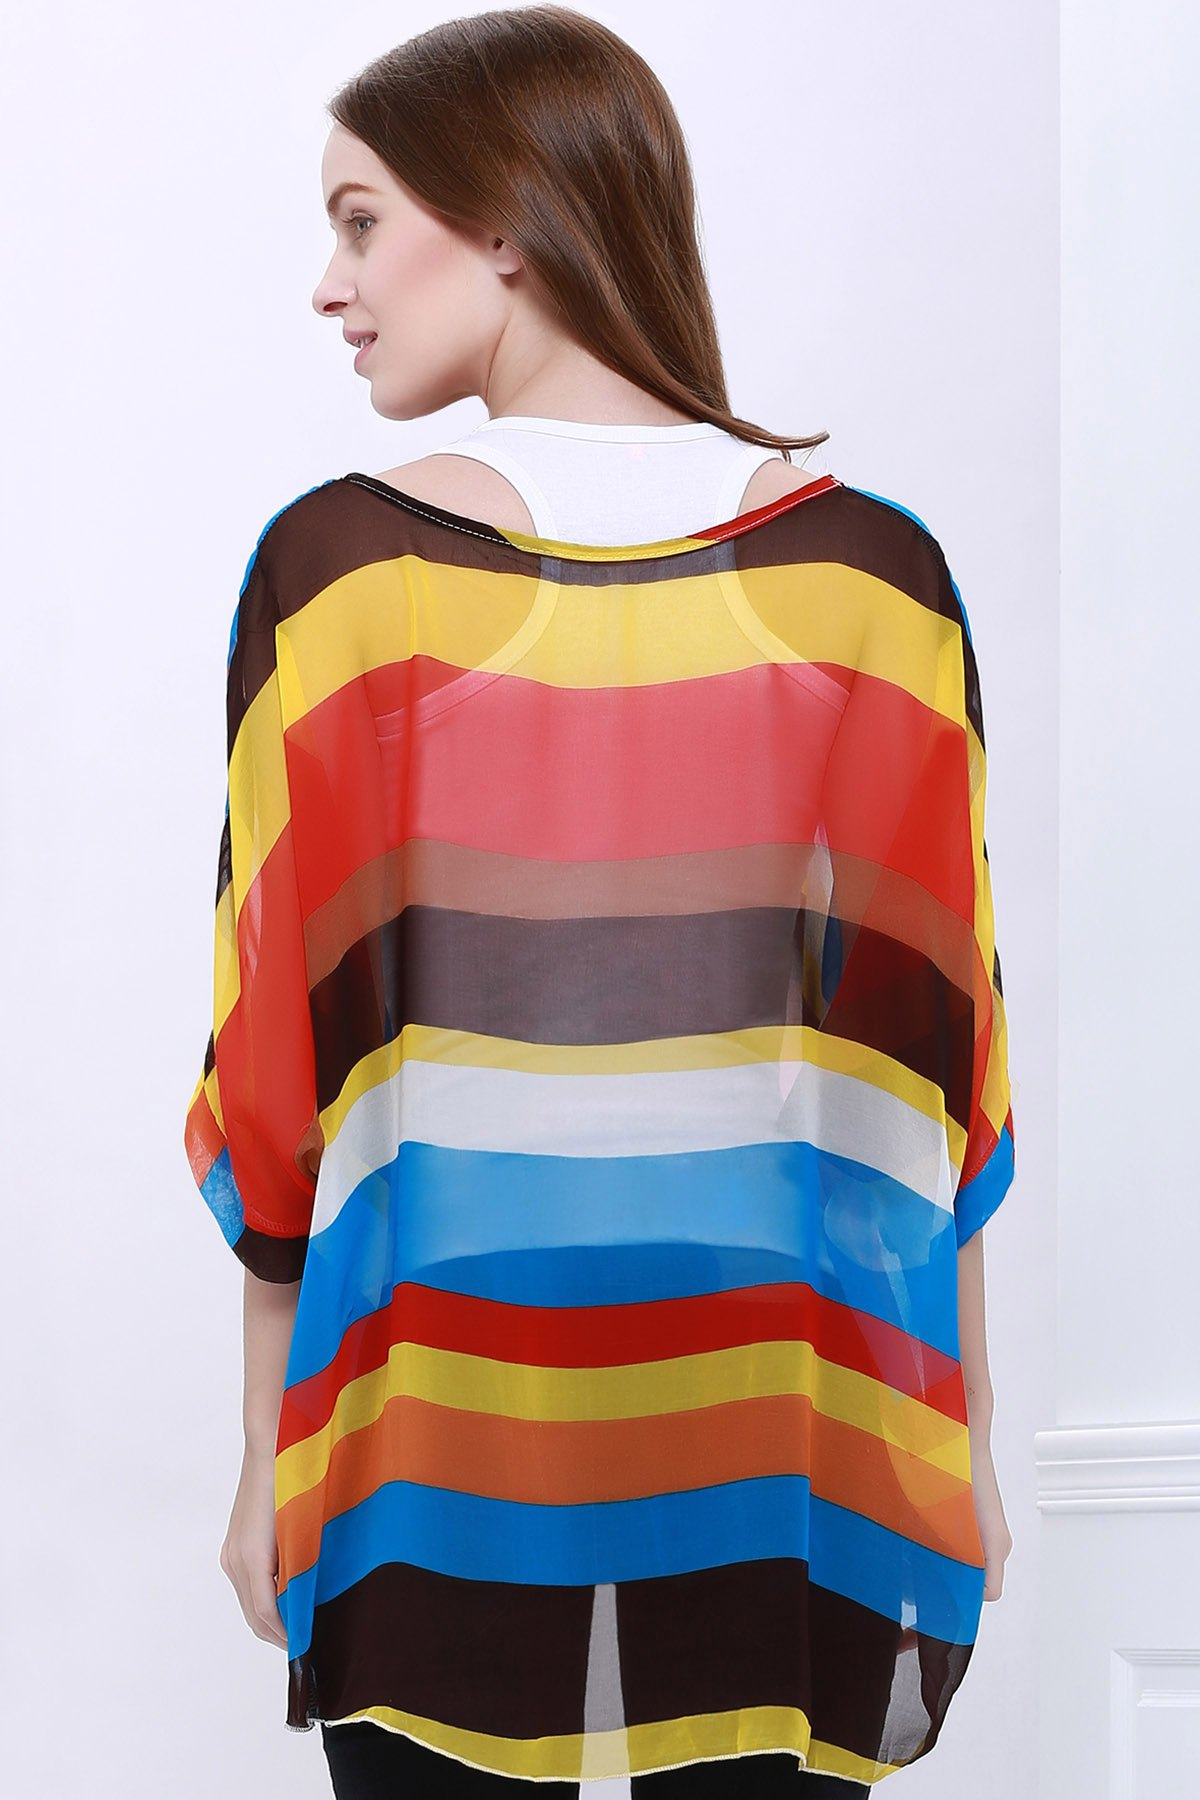 Trendsetter Women's Summer Blouse With Colorful Stripe Print Asymmetric Batwing Sleeve Design - AS THE PICTURE L